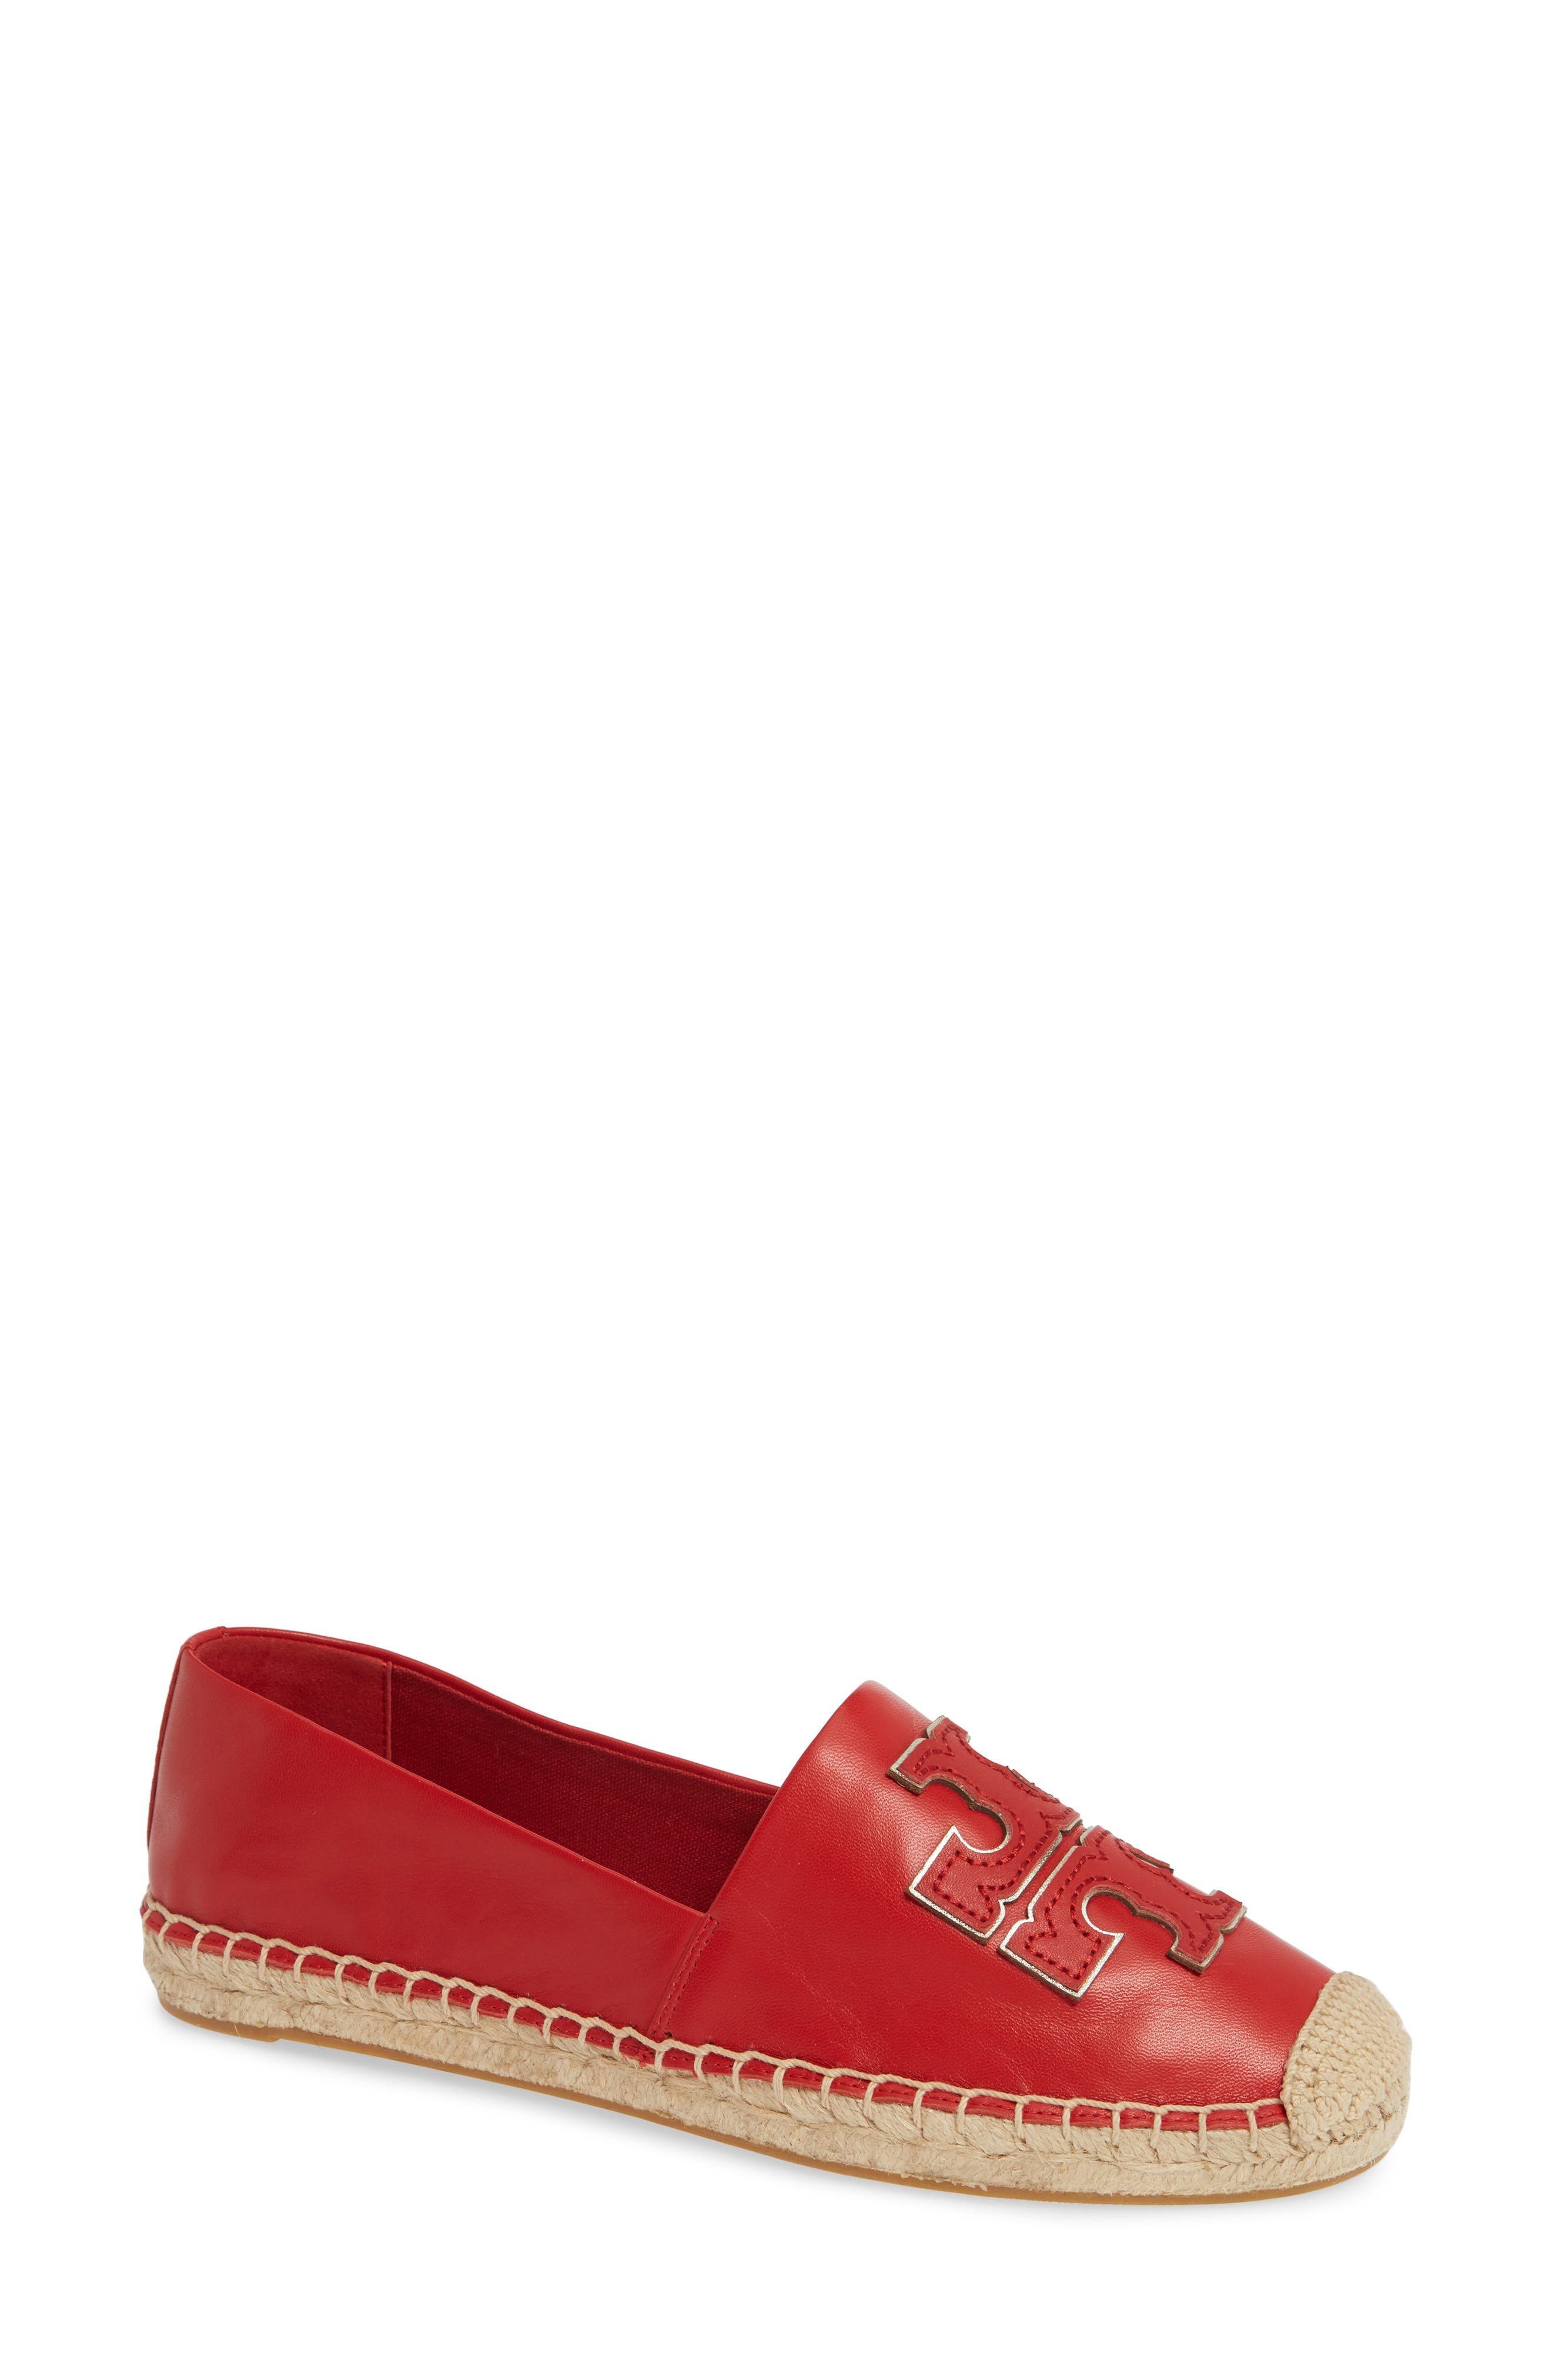 Tory Burch Ines Espadrille, Red